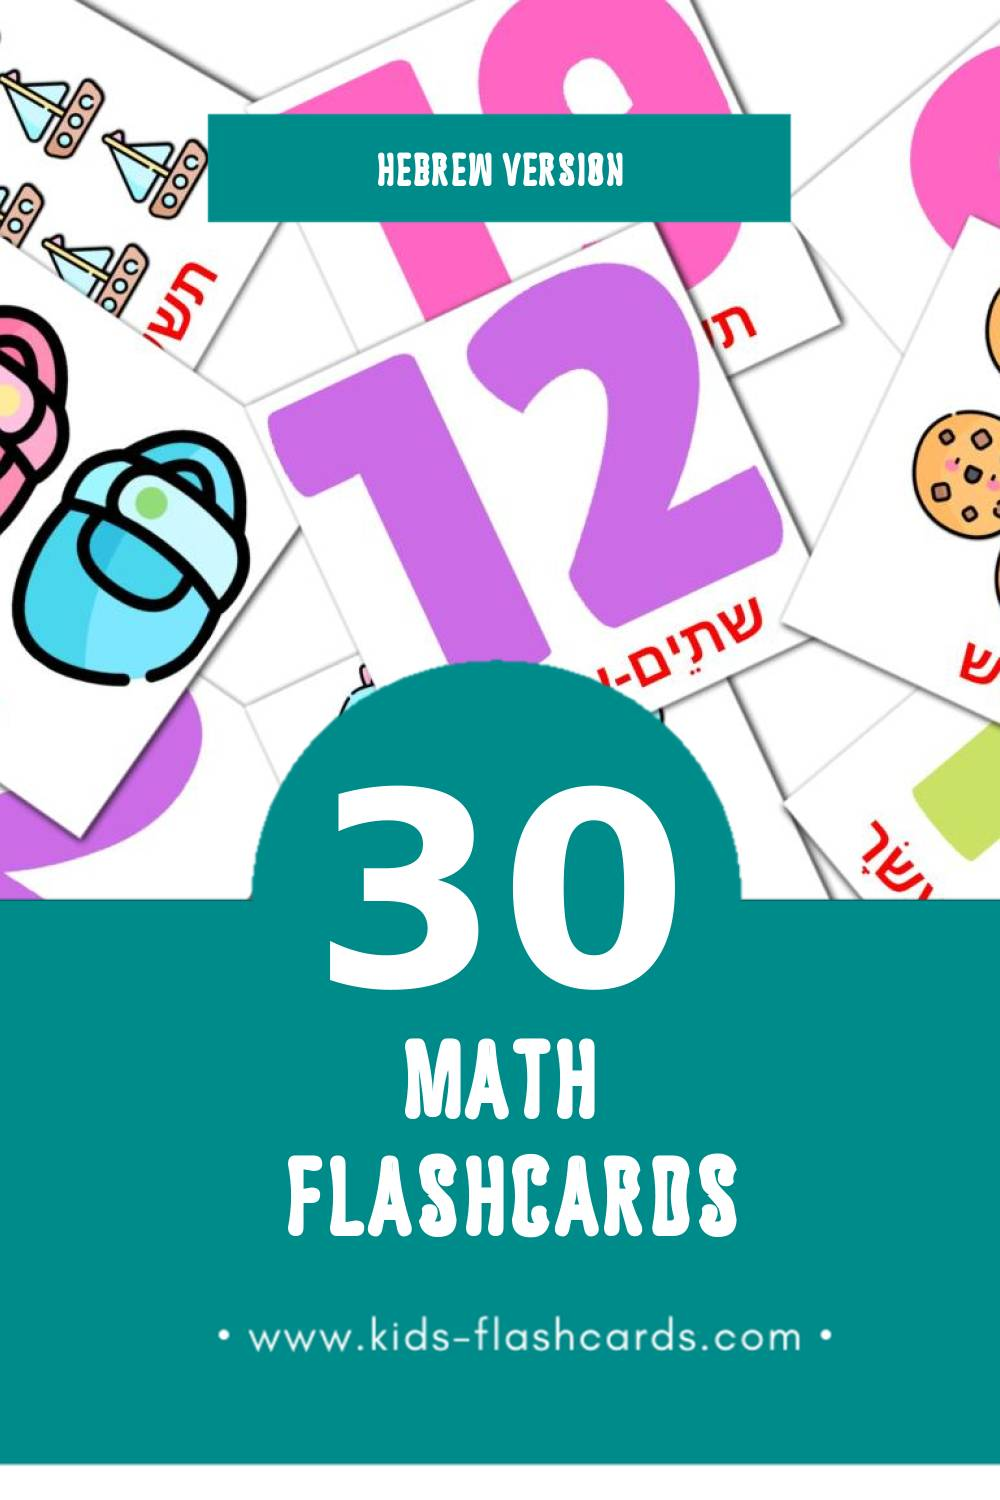 Visual מָתֶמָטִיקָה Flashcards for Toddlers (20 cards in Hebrew)